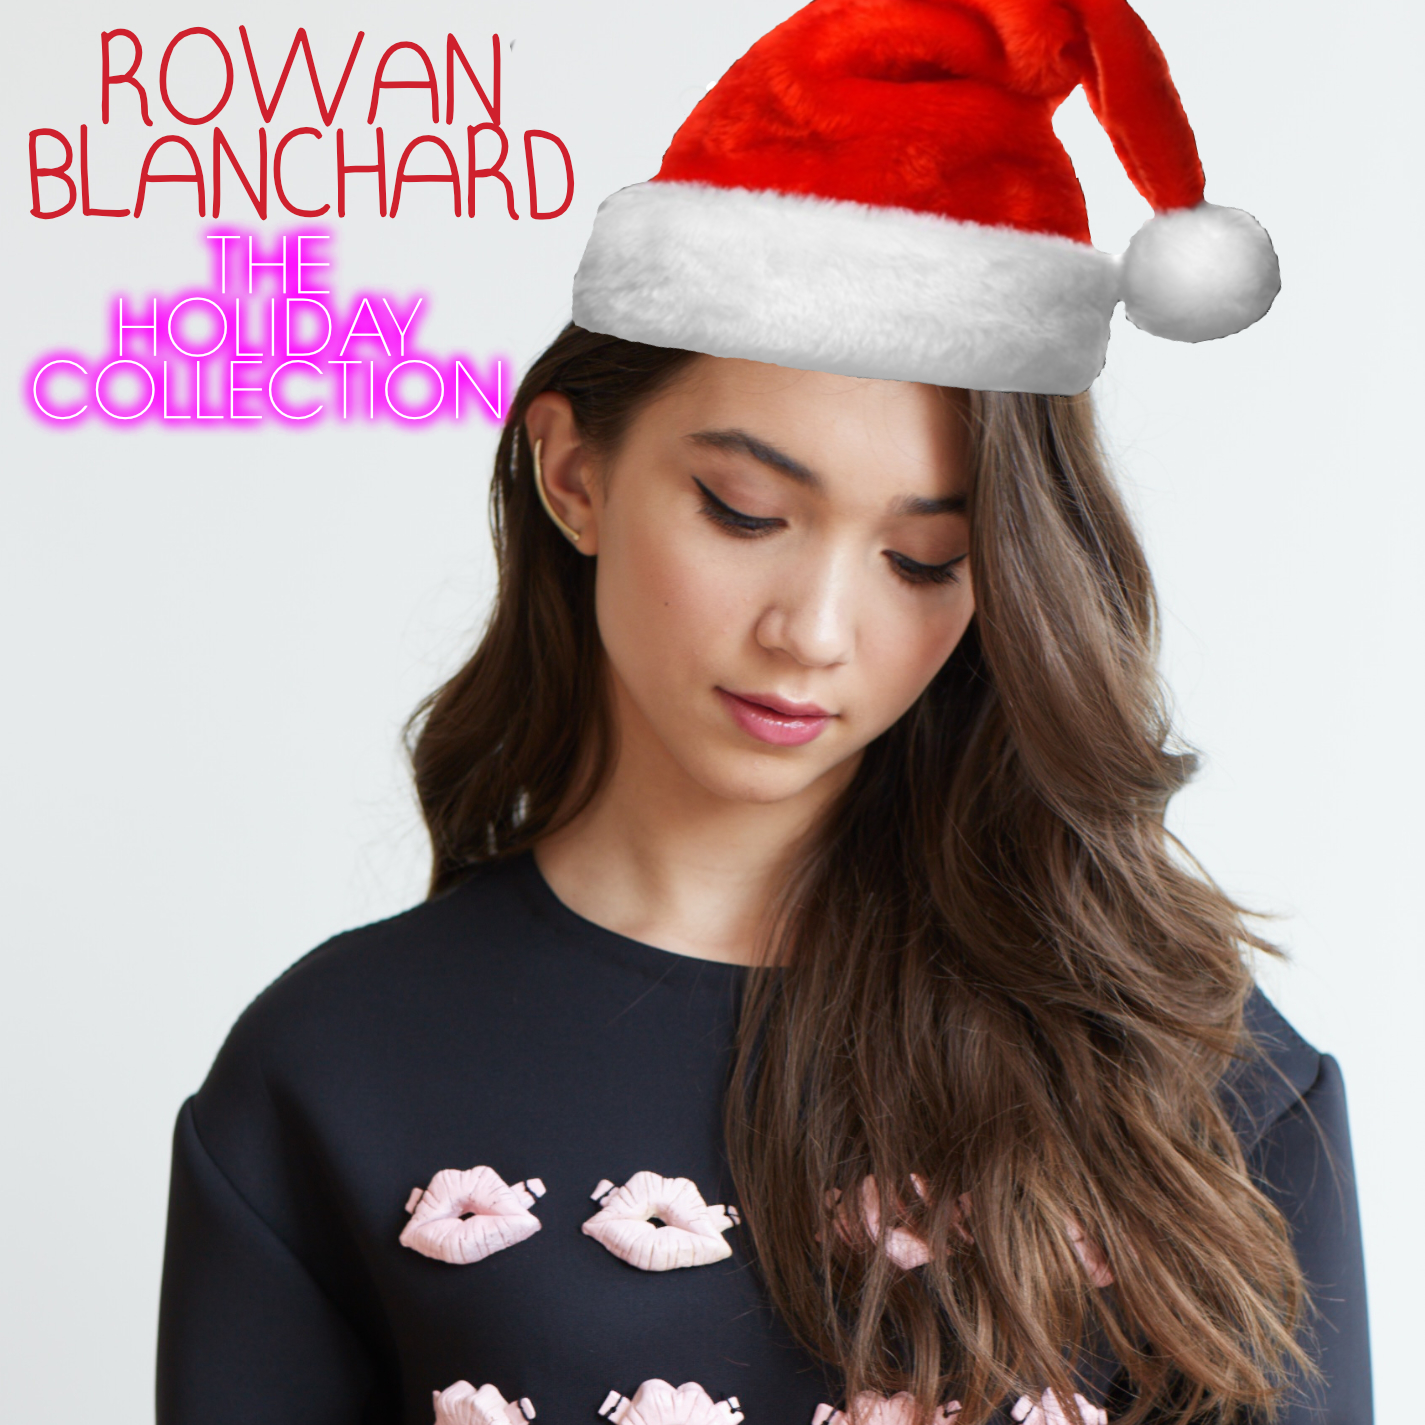 The Holiday Collection (Rowan Blanchard album)